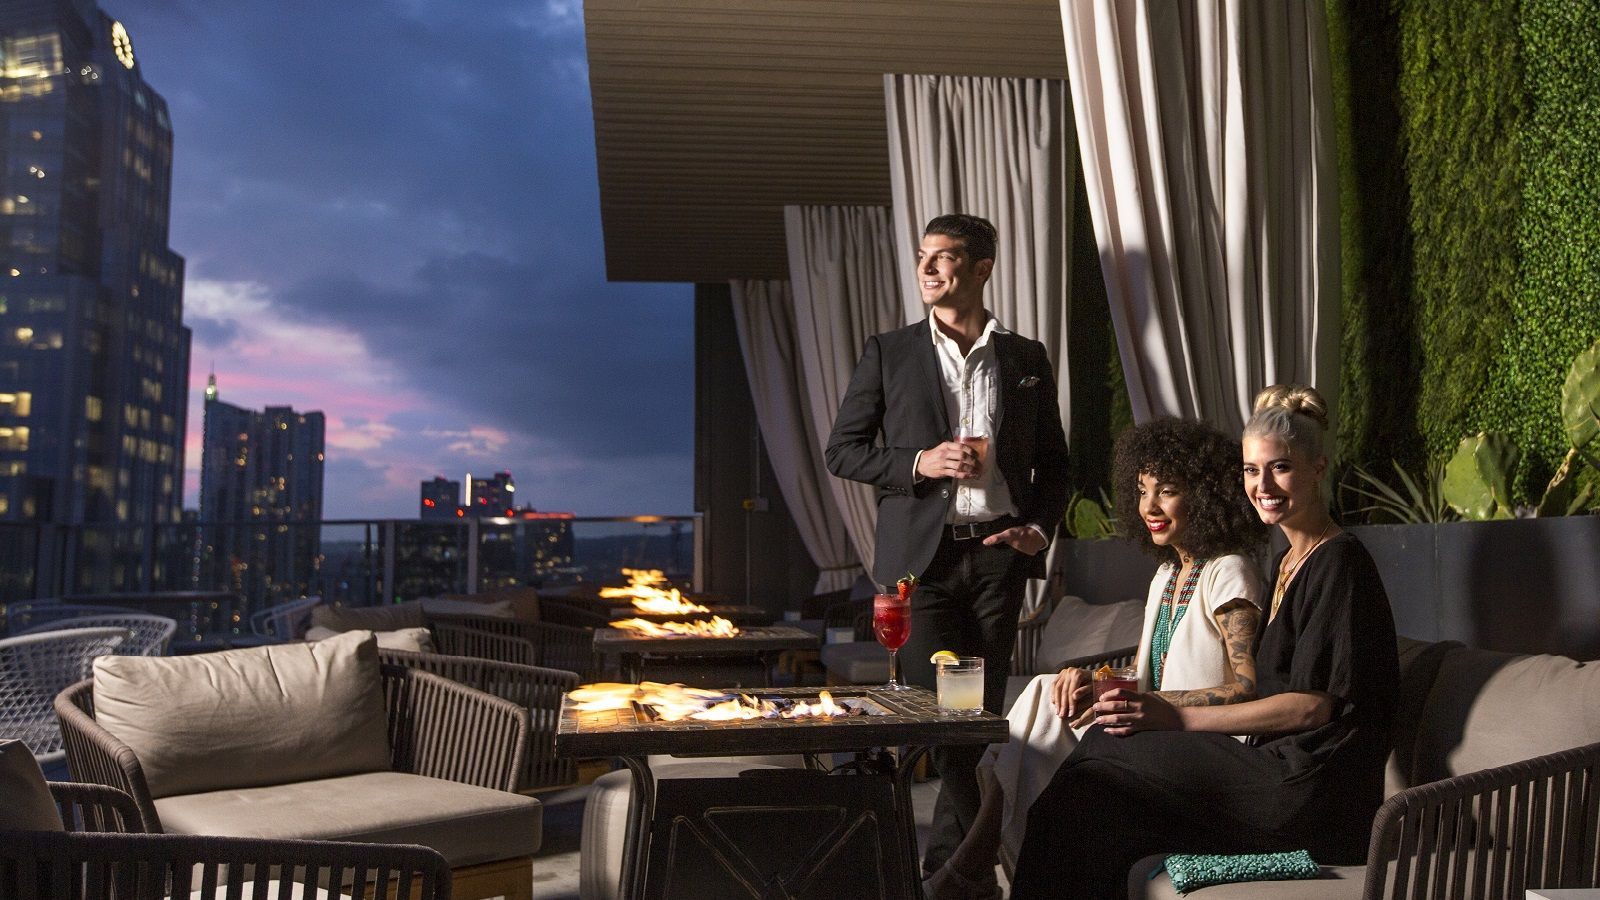 Begin your career at The Westin Austin Downtown.